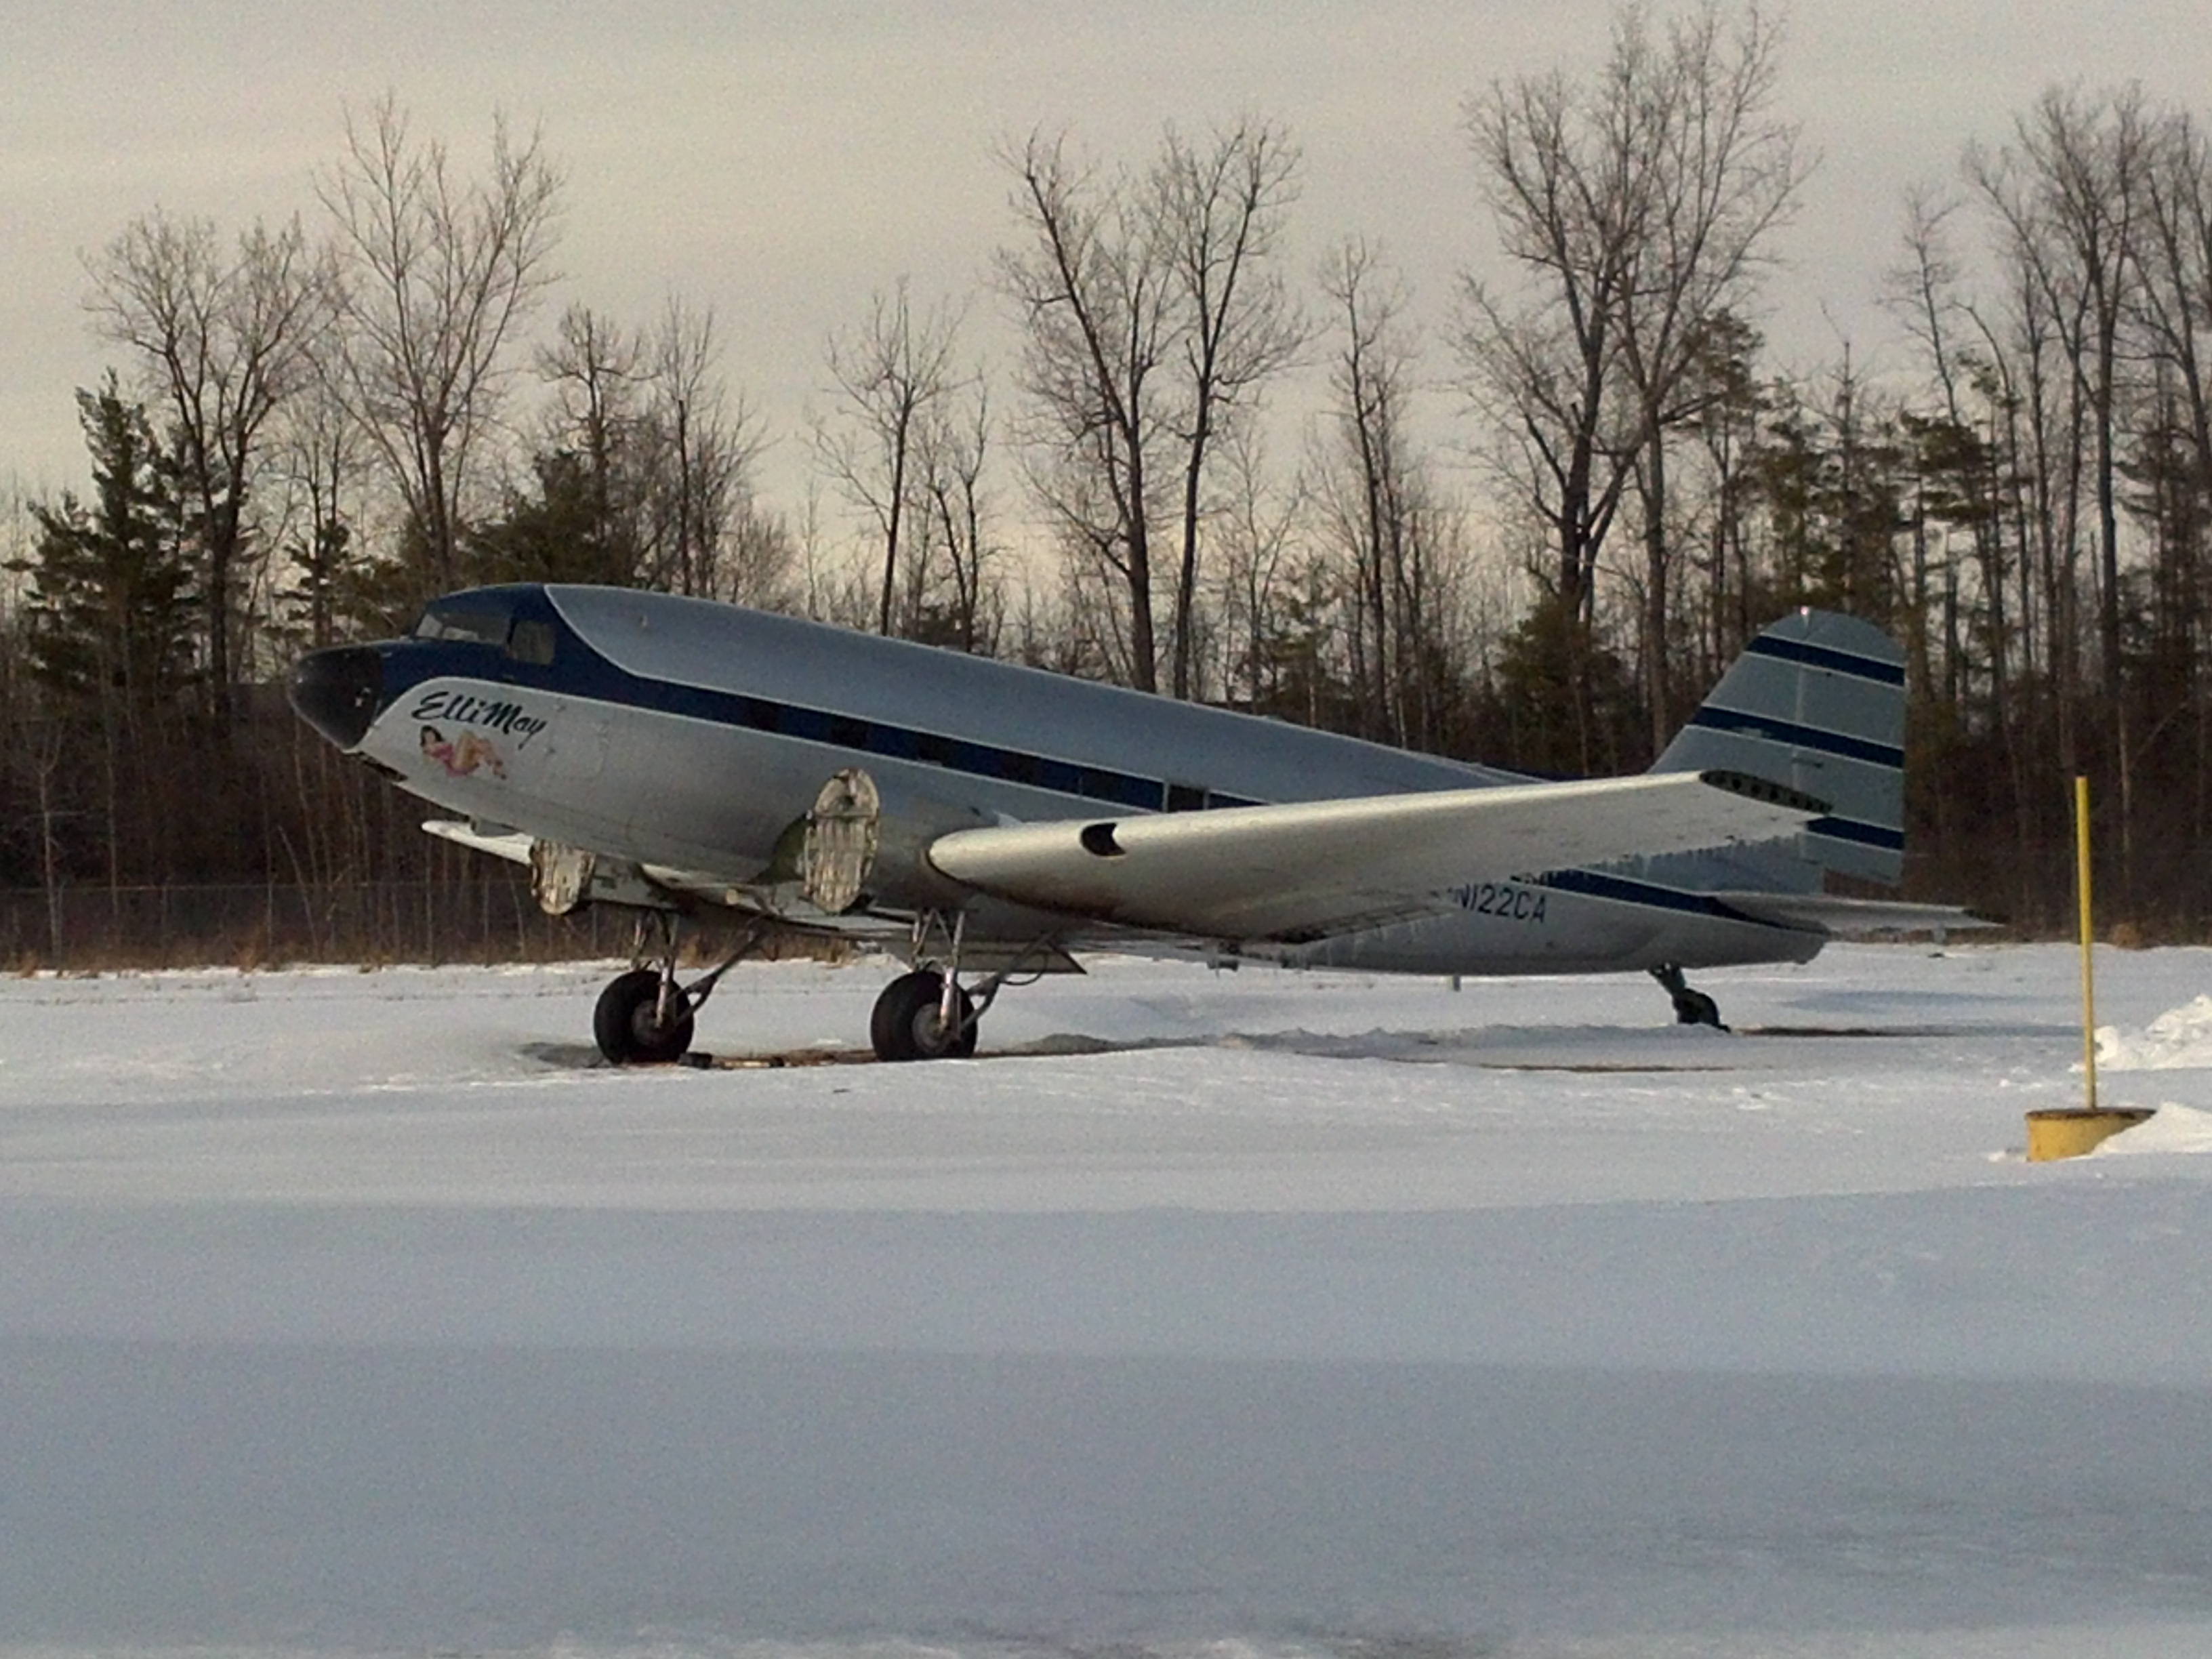 Photo of the DC-3 - Airframe